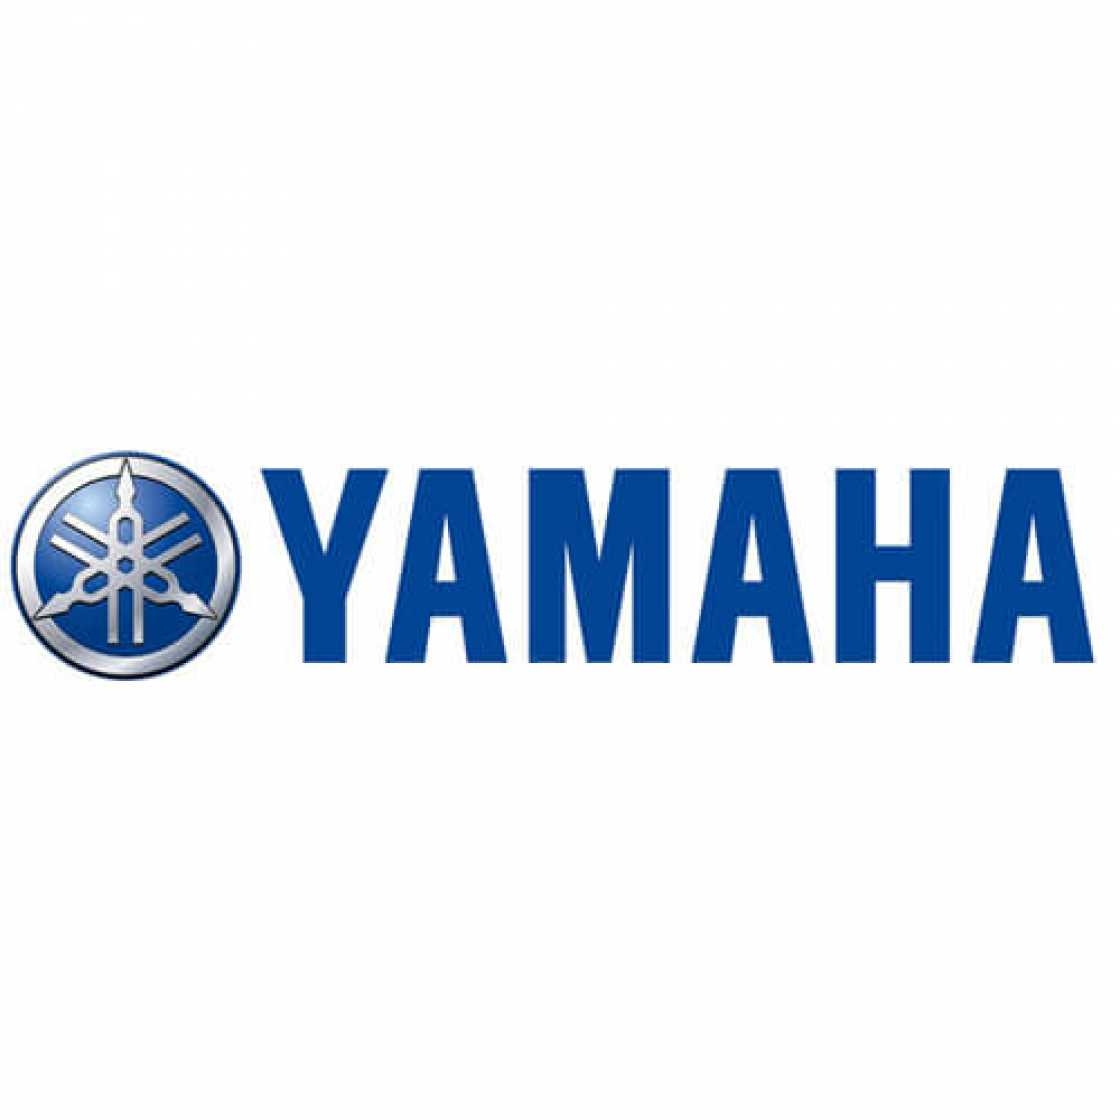 Yamaha studio speakers